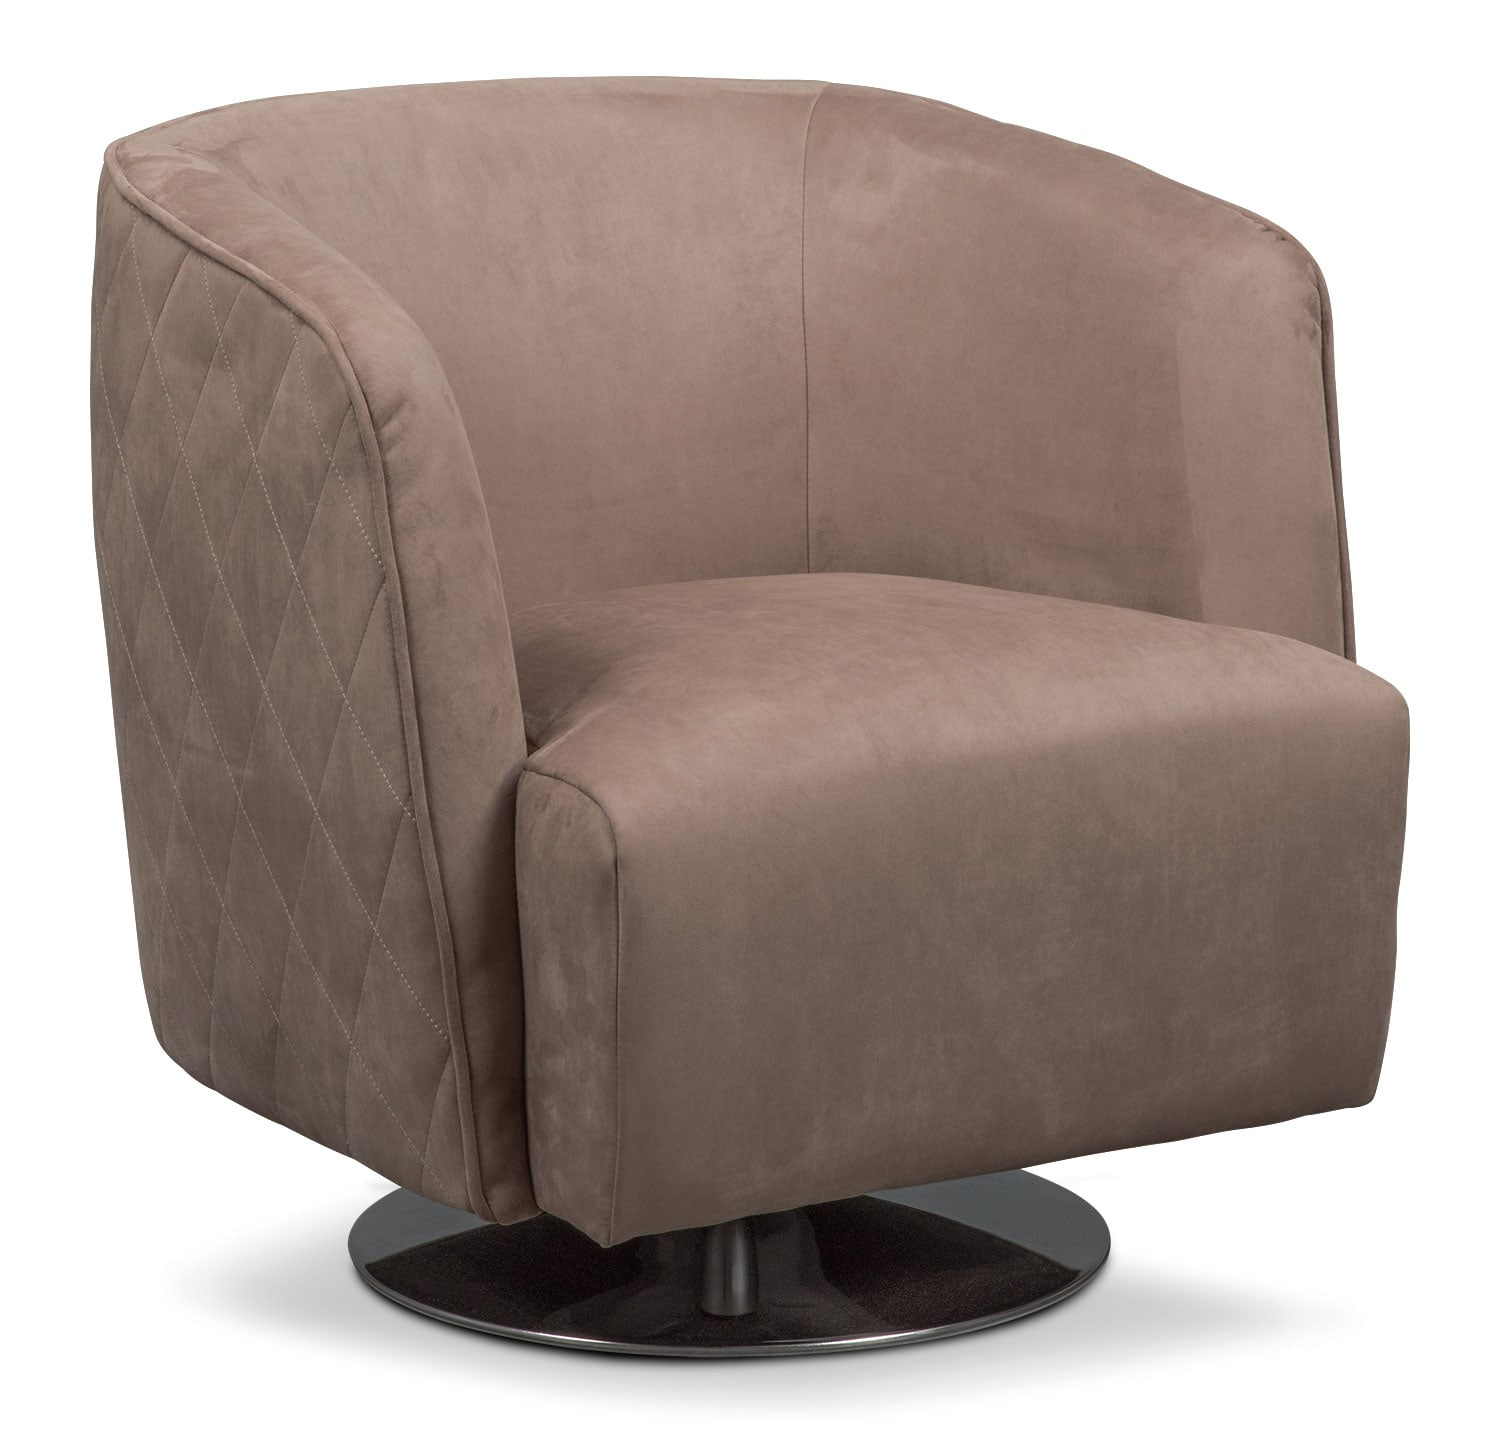 Living Room Furniture   Santana Swivel Chair   Taupe